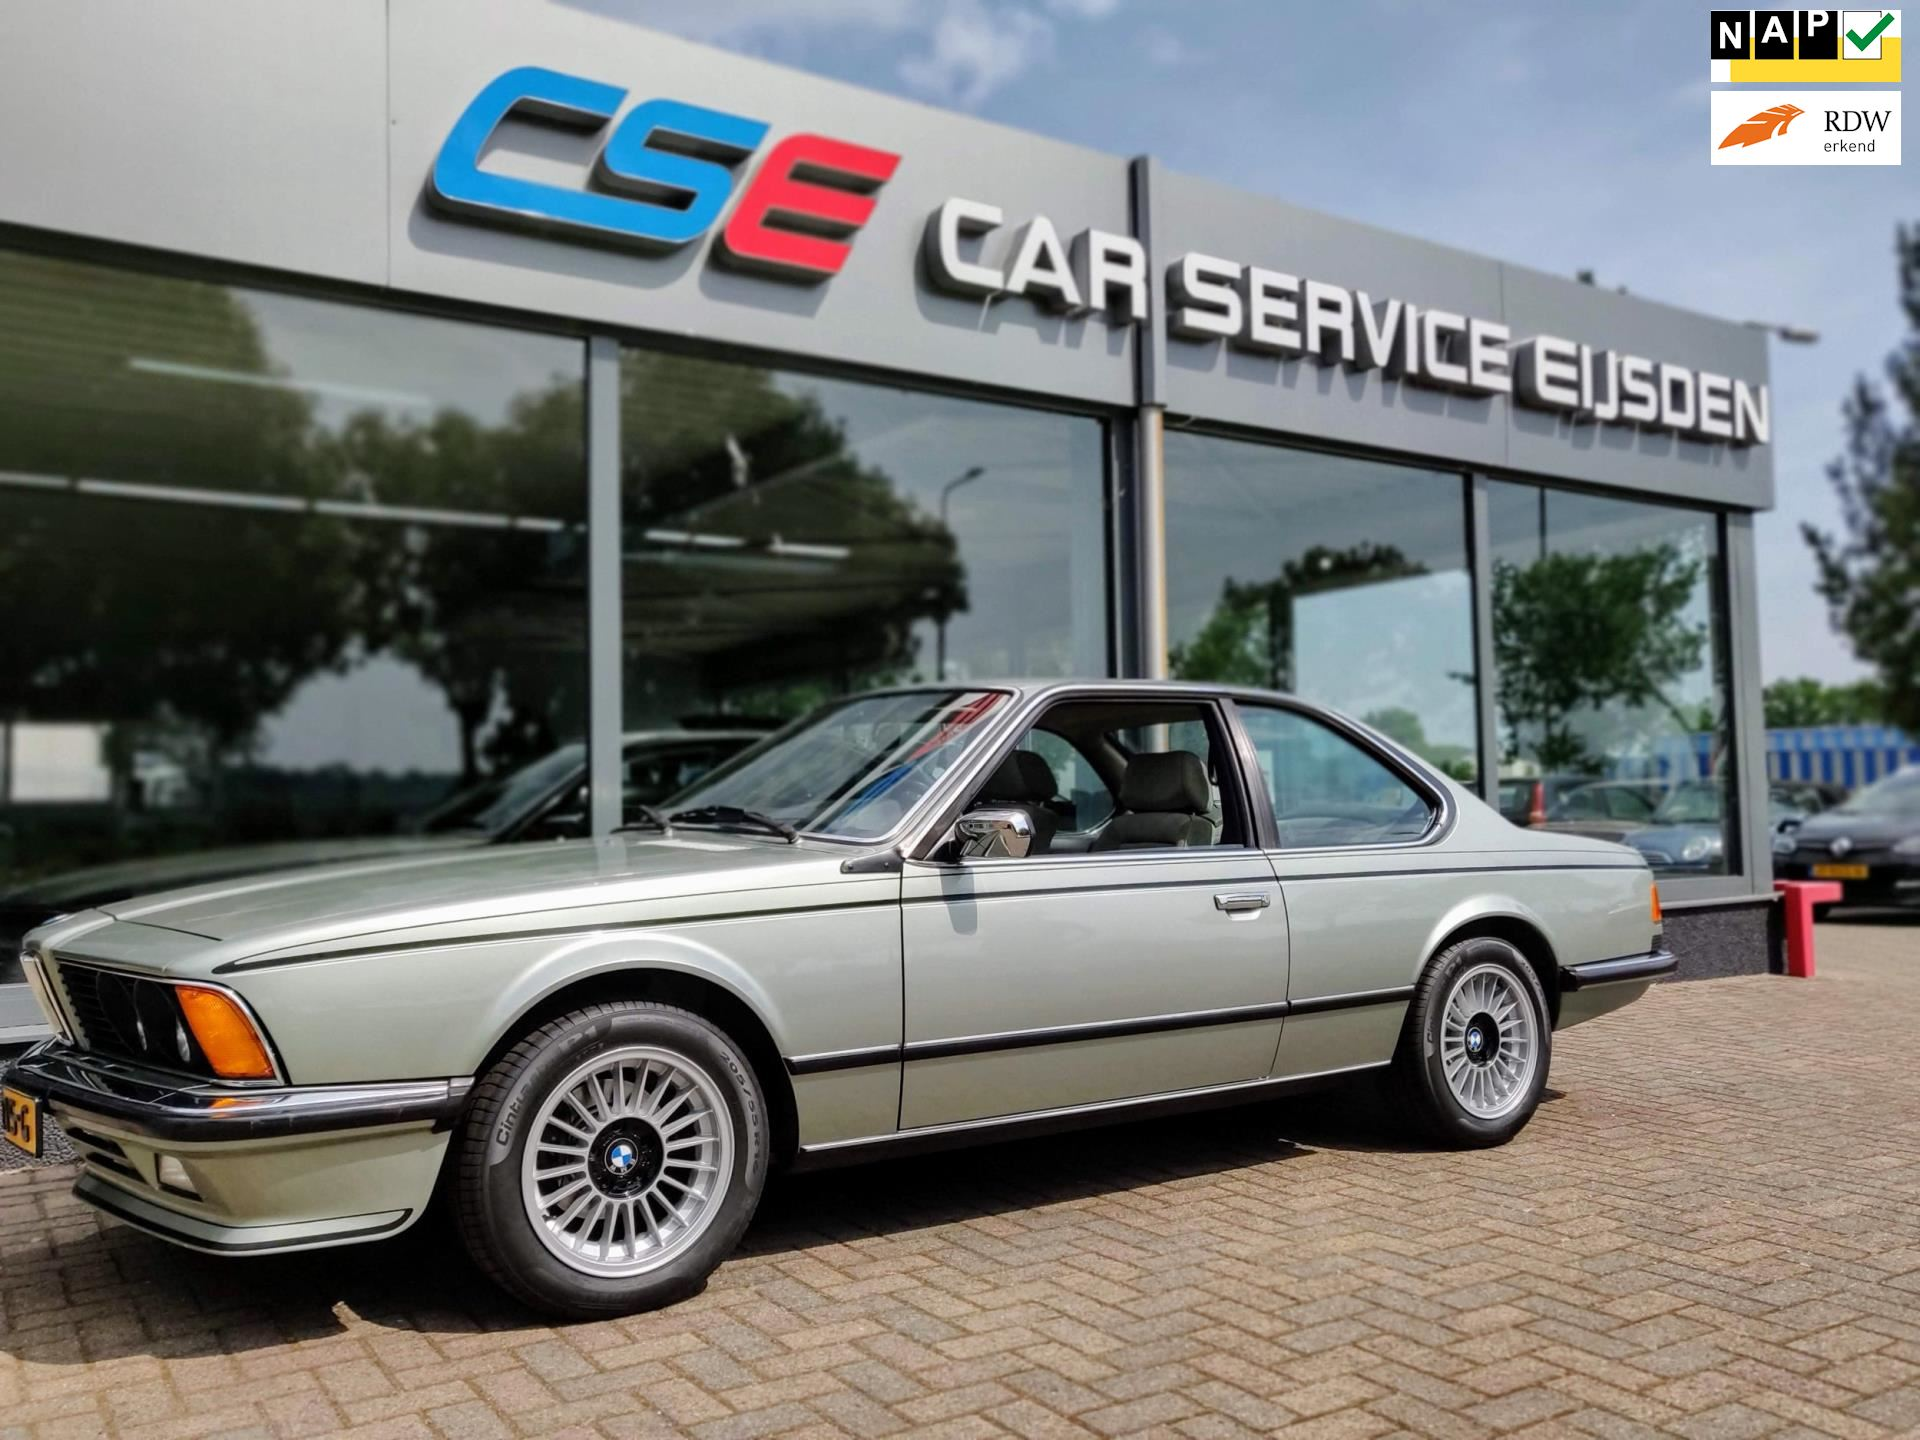 BMW 635 CSI occasion - Car Service Eijsden